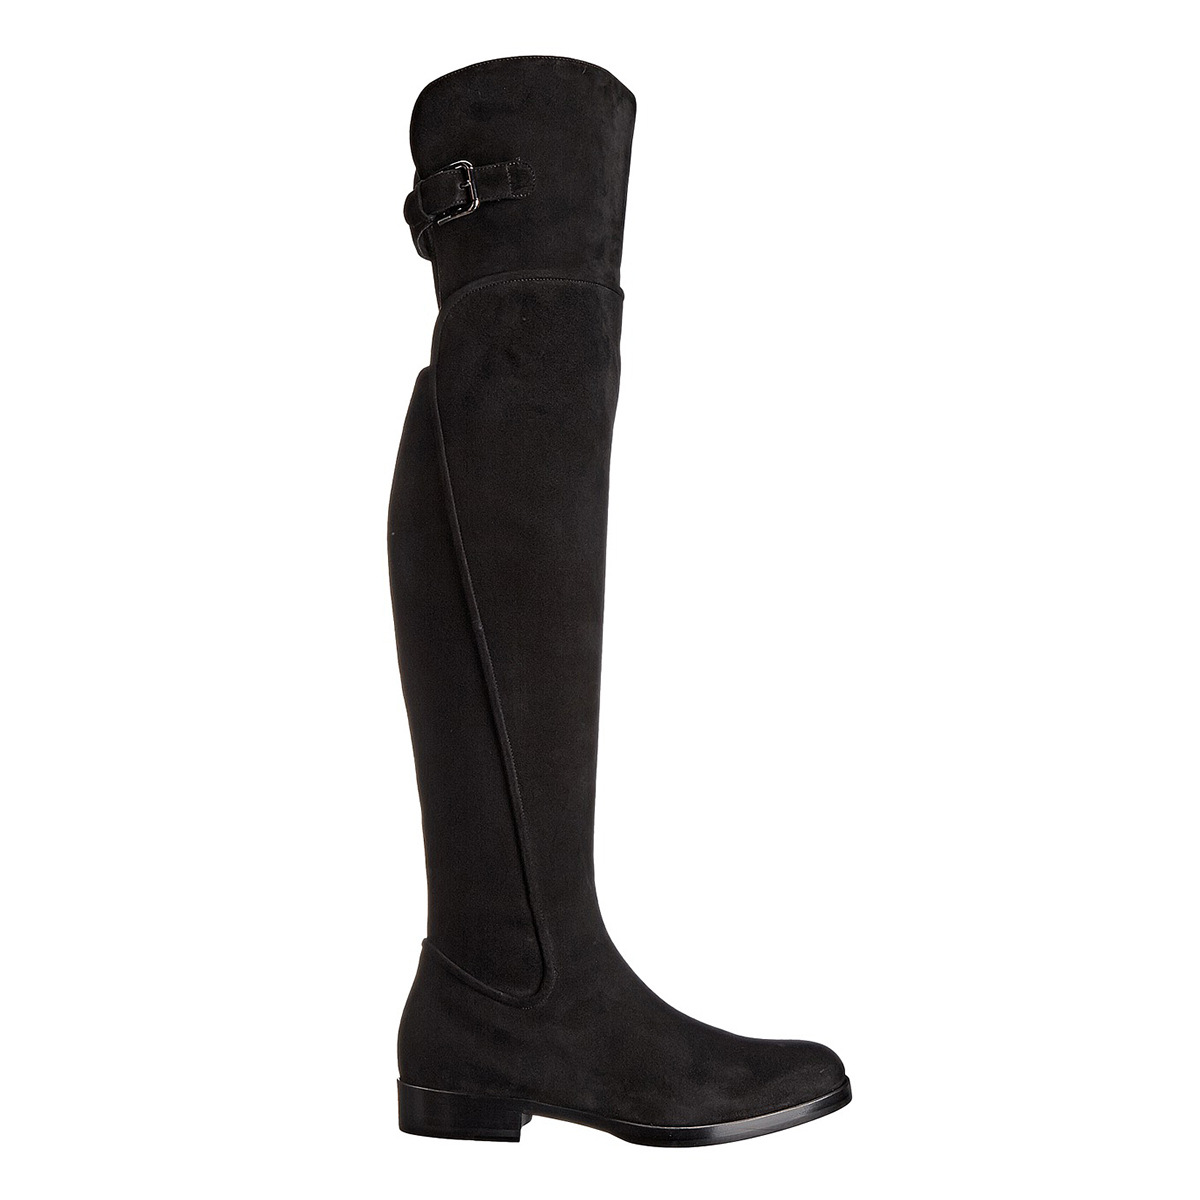 Women's Knee High Boots Show Thin Suede Genuine Leather Side Zipper Over-the-knee Long Boots Flat Shoes Woman Femmes Chaussures